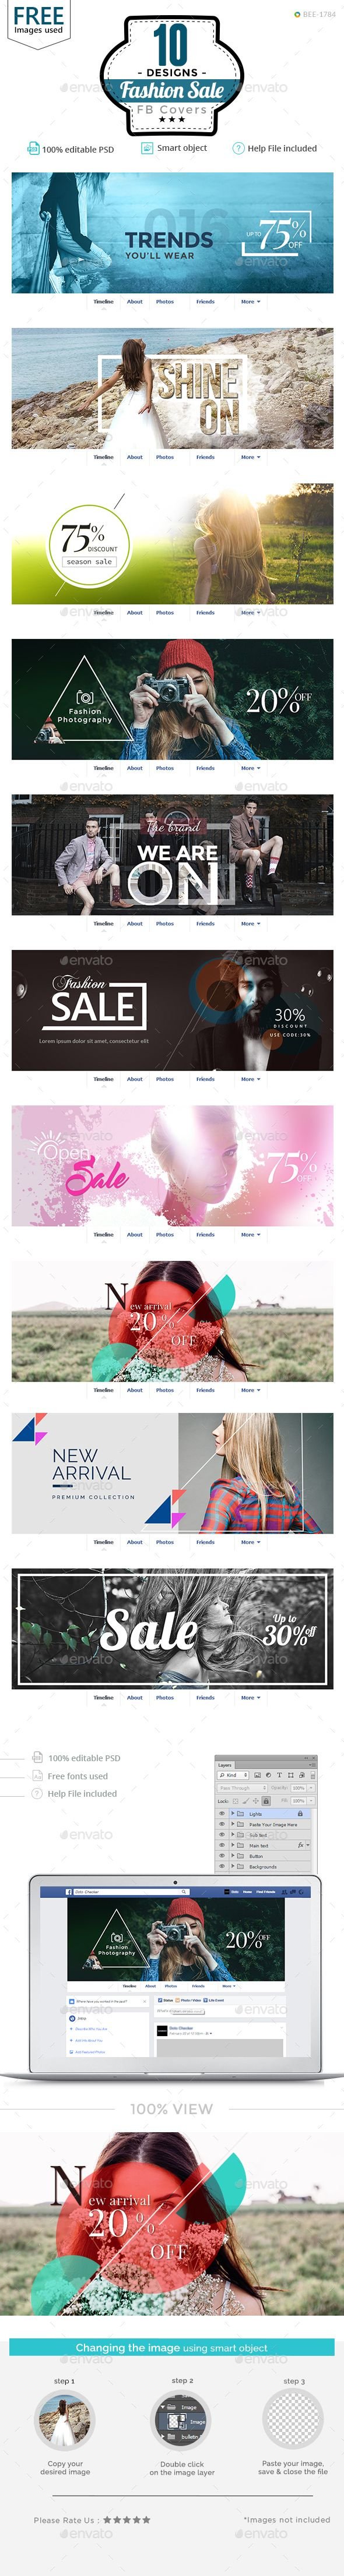 Fashion Sale Facebook Covers Design Template - 10 Designs - Facebook Timeline Covers Social Media Design Template PSD. Download here: https://graphicriver.net/item/fashion-sale-facebook-covers-10-designs/18921453?ref=yinkira